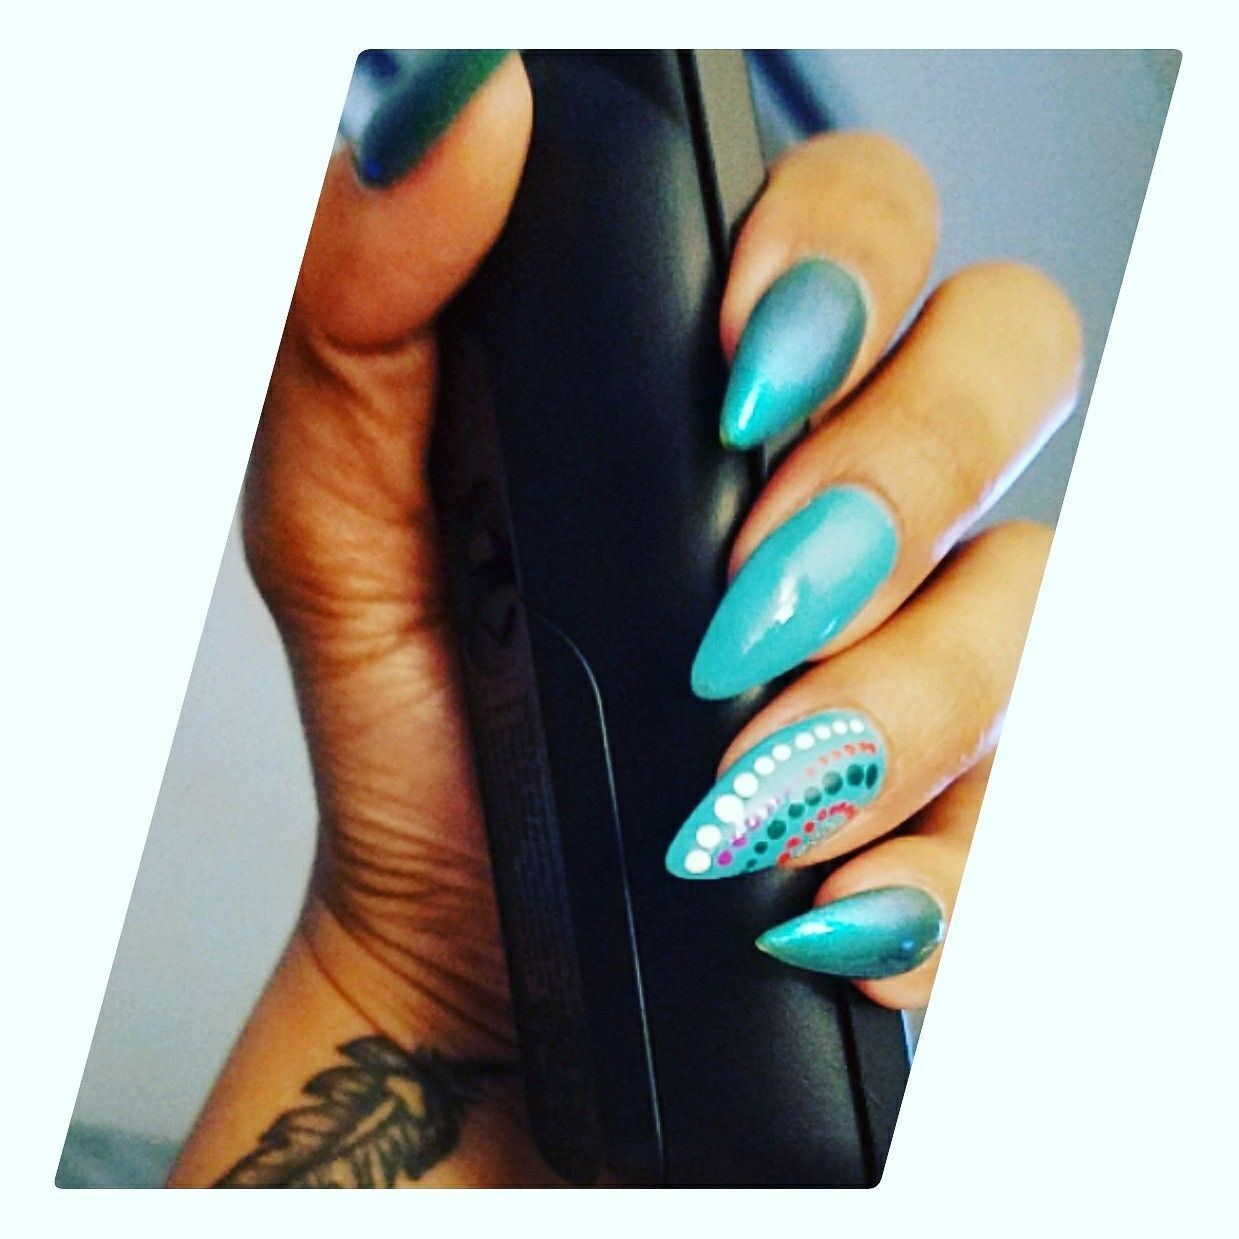 Pin By My Info On Mountainpeak Stiletto Nails Colors And Design